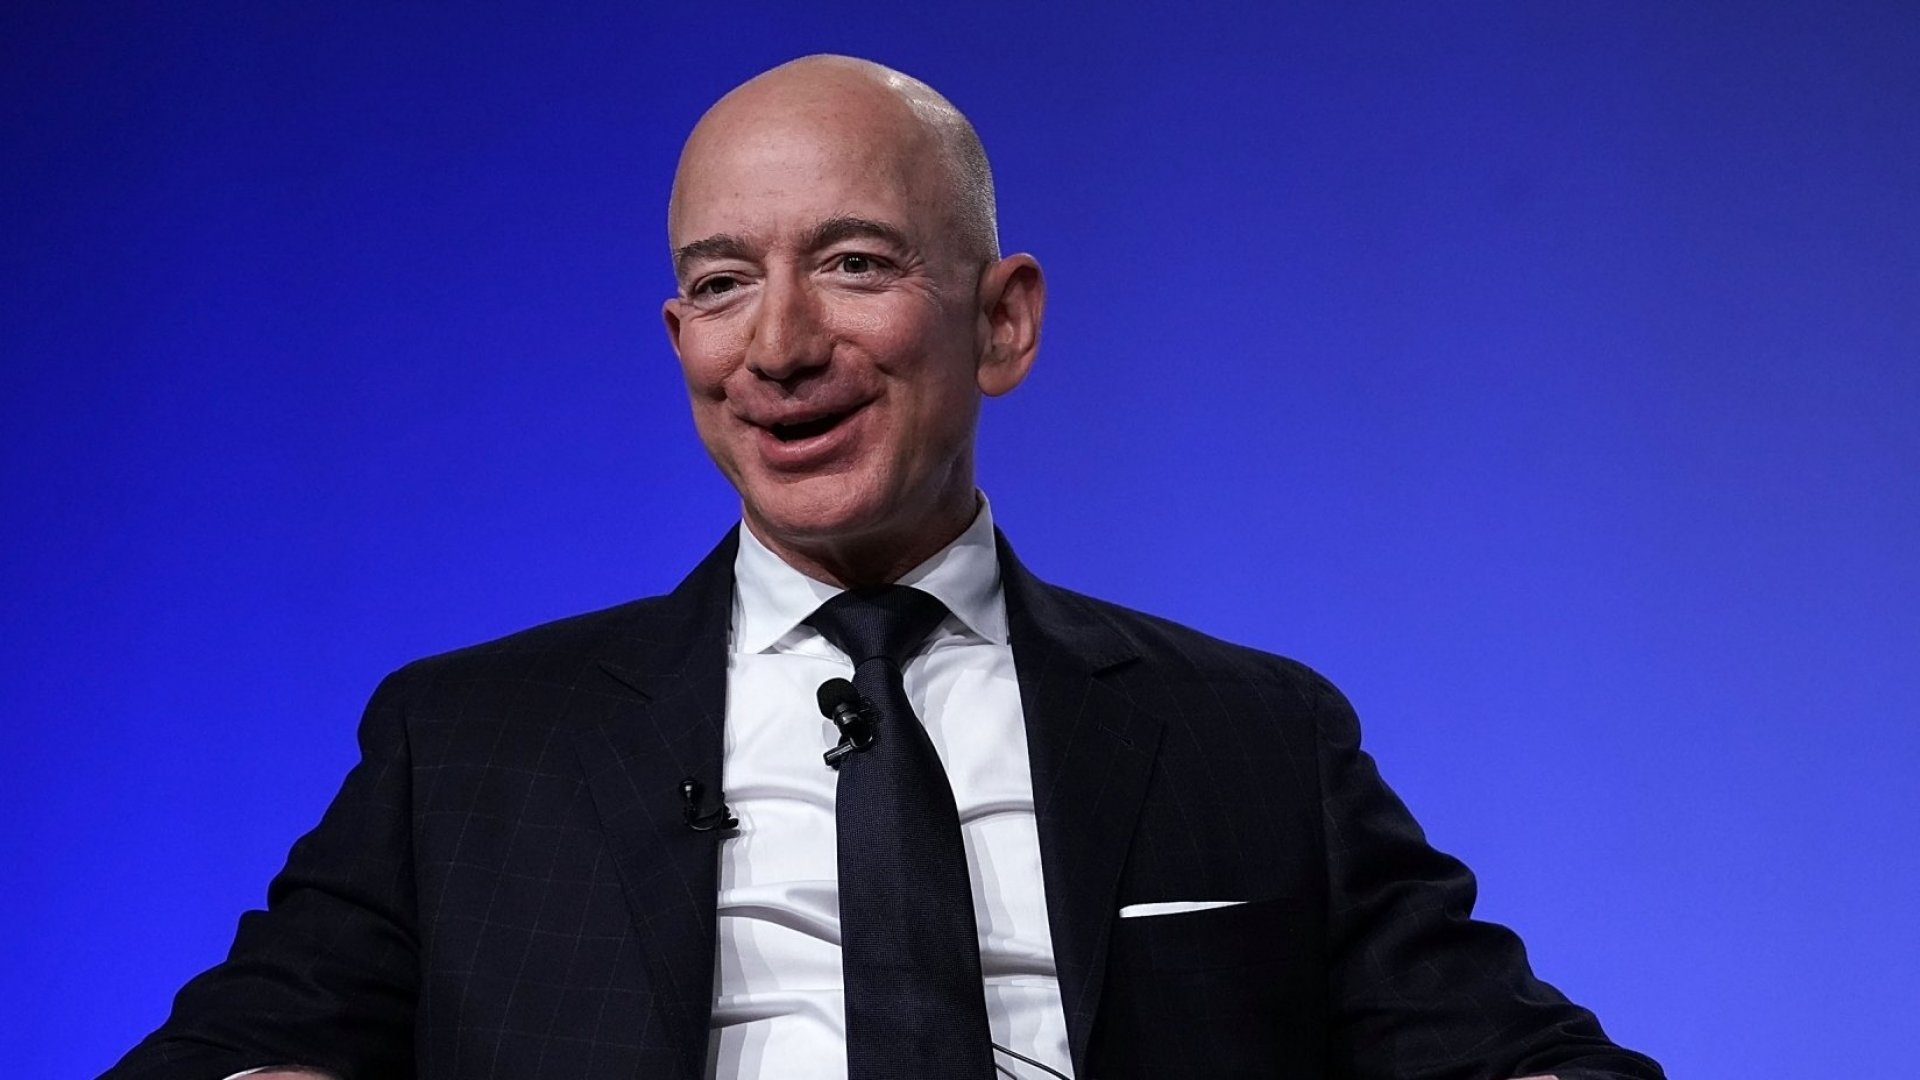 Jeff Bezos Just Revealed 1 Thing That Sets Very Smart People Apart From the Rest